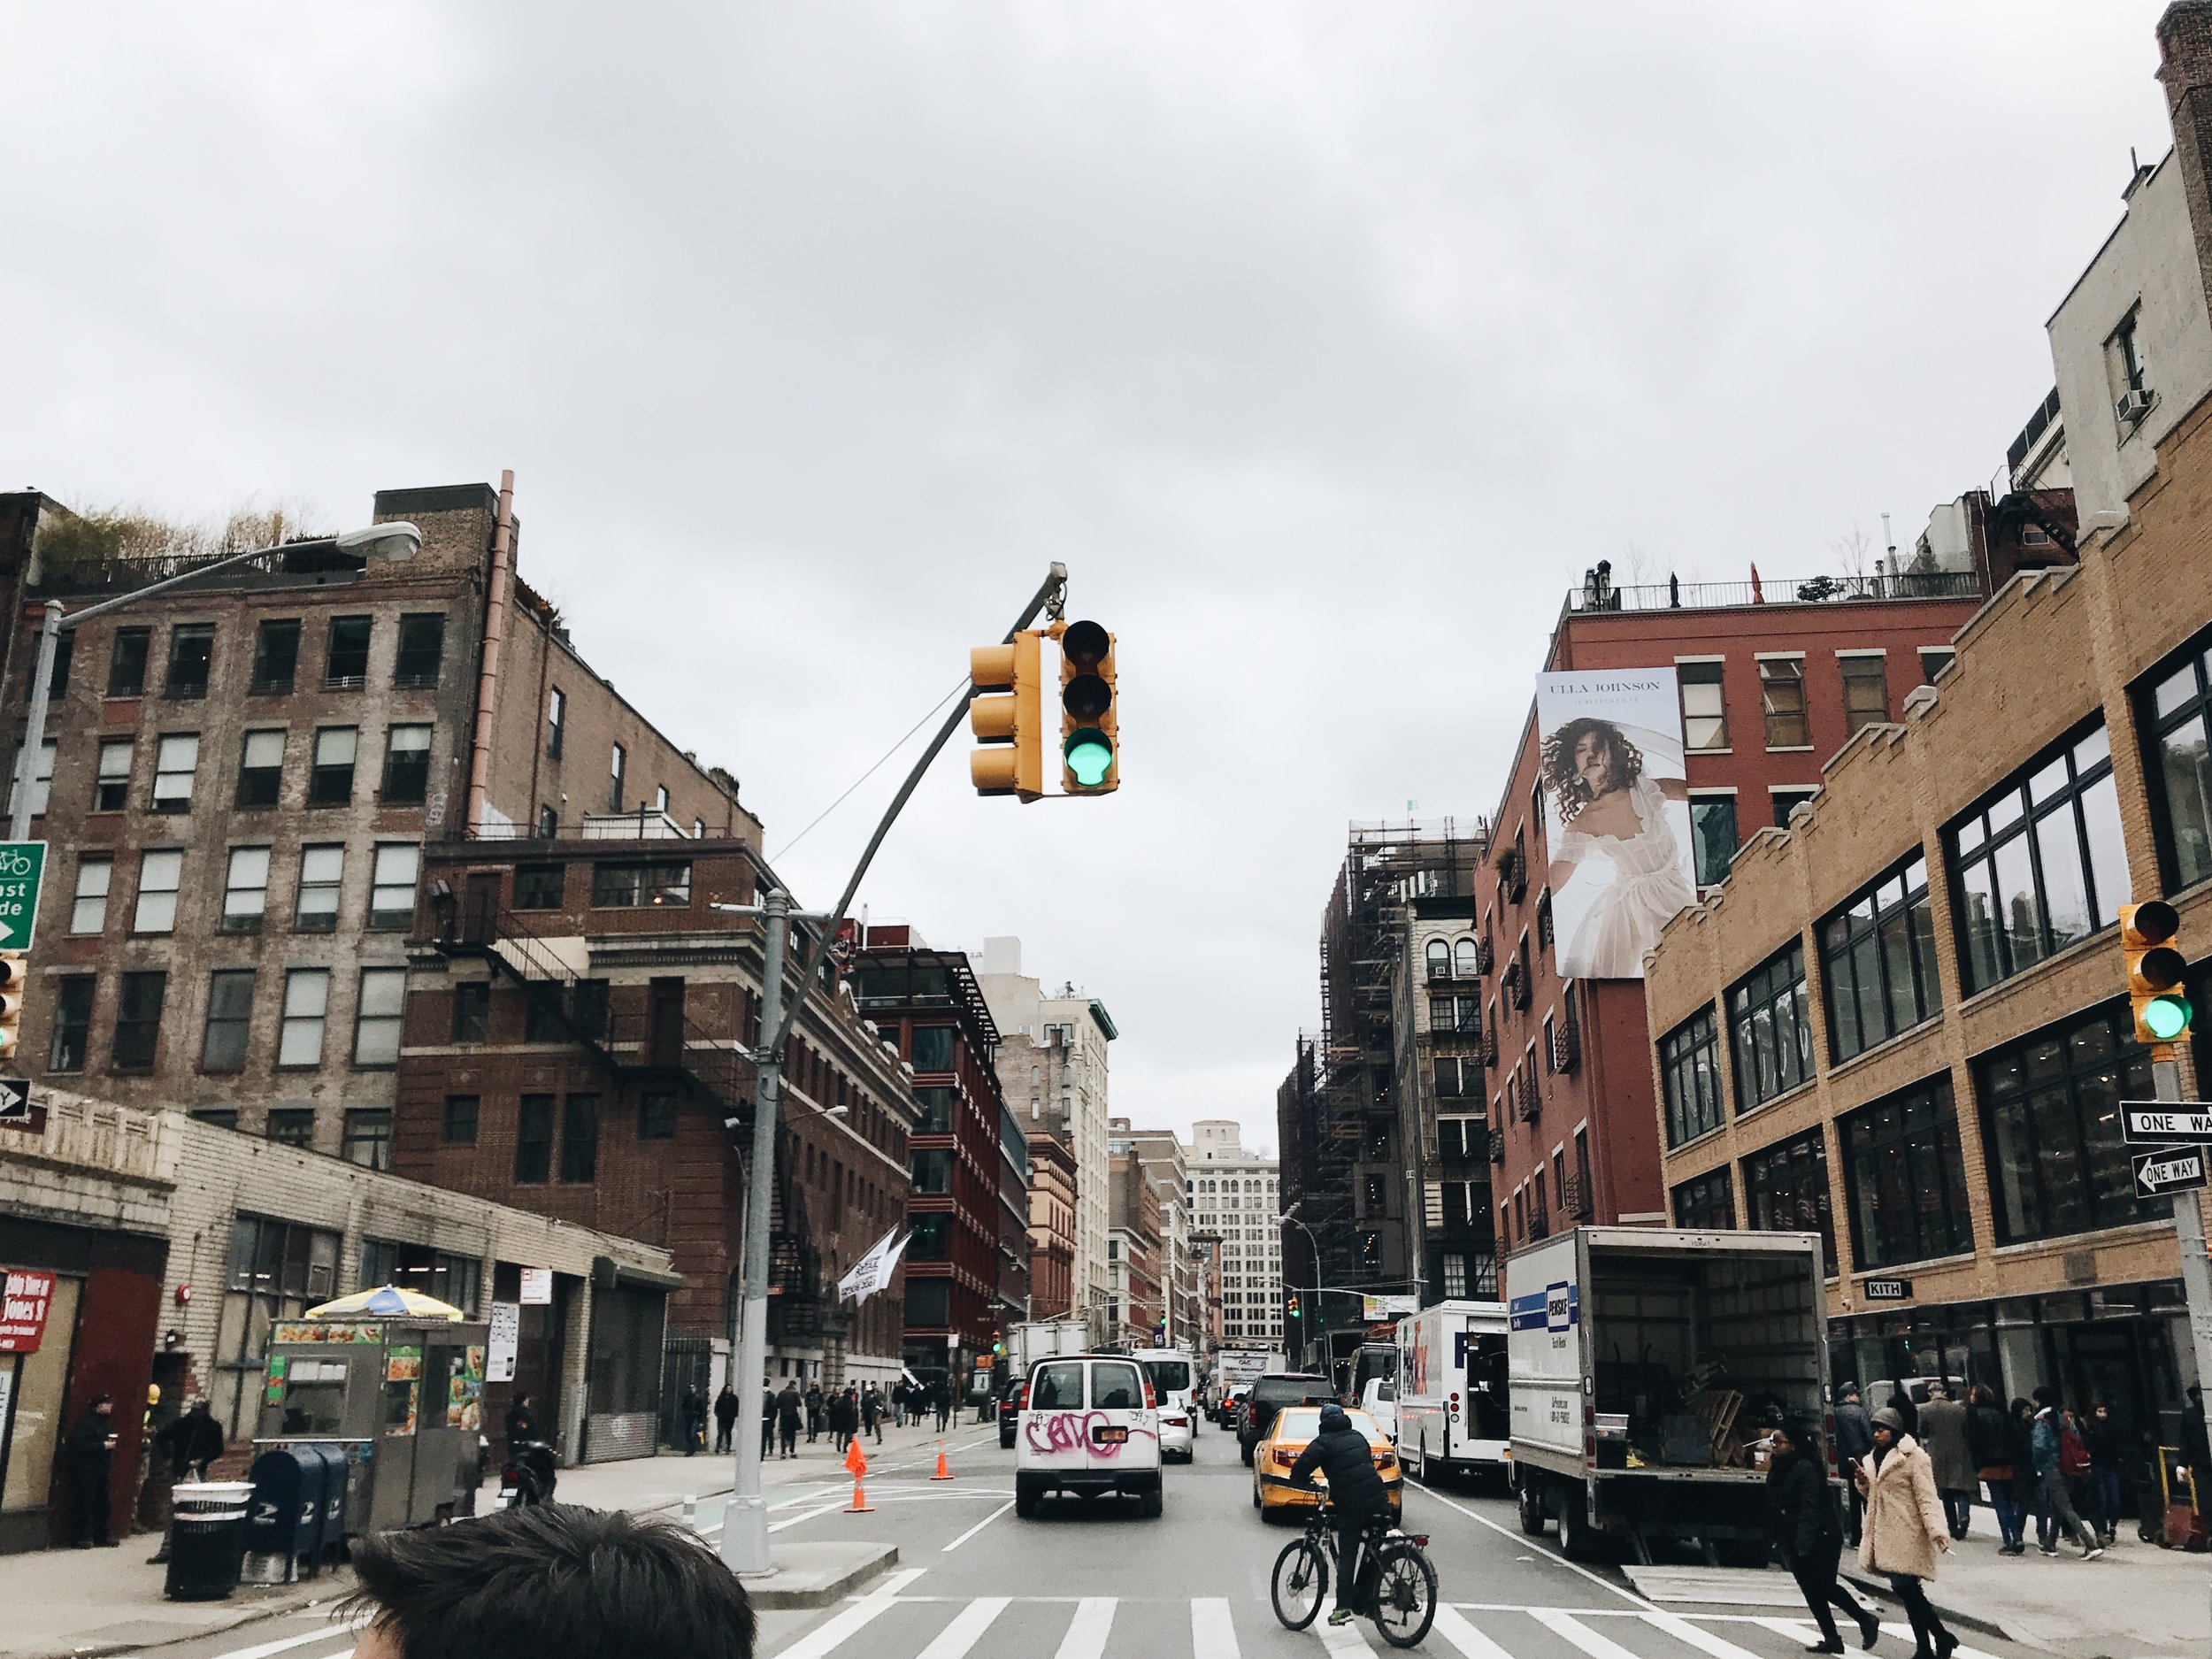 I struck out on my own and took that cliche, very non-New-Yorker picture.